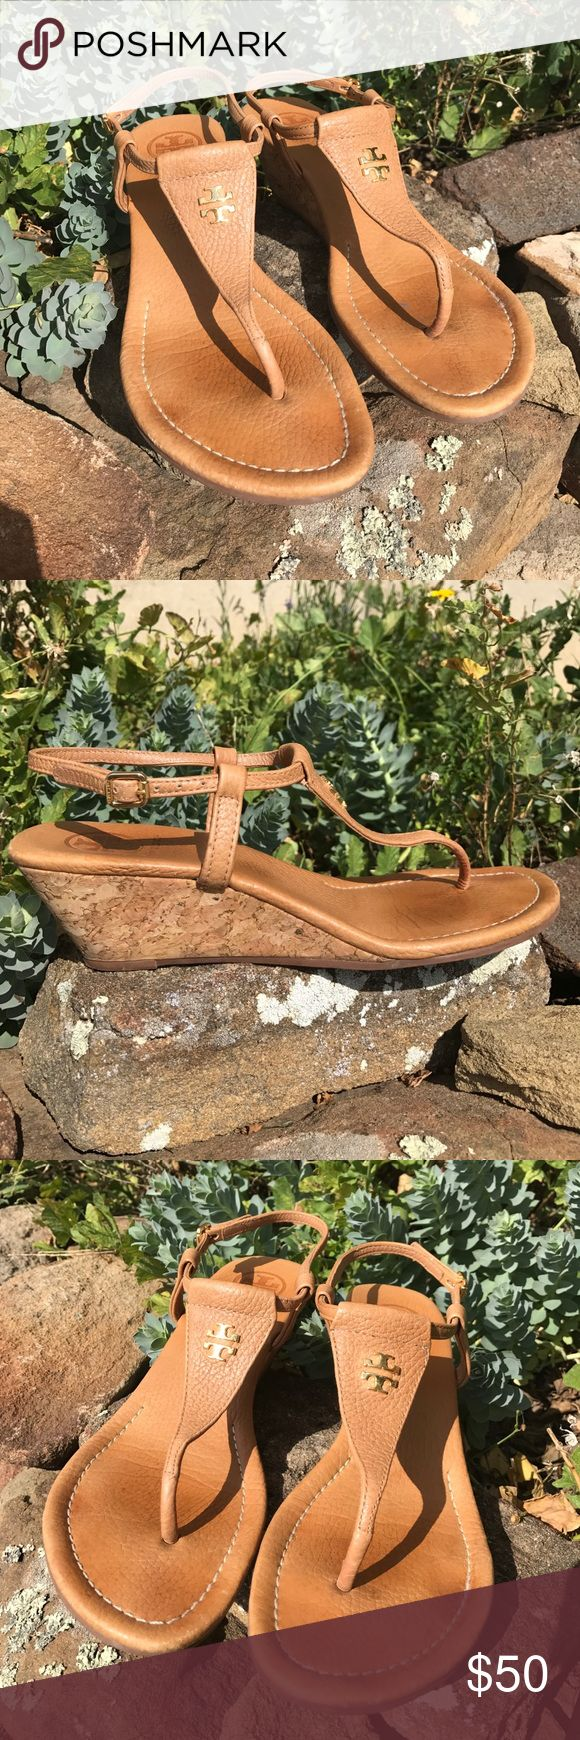 Tory Burch Neutral Sandals Cute and easy Torys! The perfect summer neutral, put them on and go. The slight wedge adds a little flair and helps flatter legs. Love the gold hardware - to enhance that summer glow. Easily wear into fall in warmer climates. Tory Burch Shoes Sandals